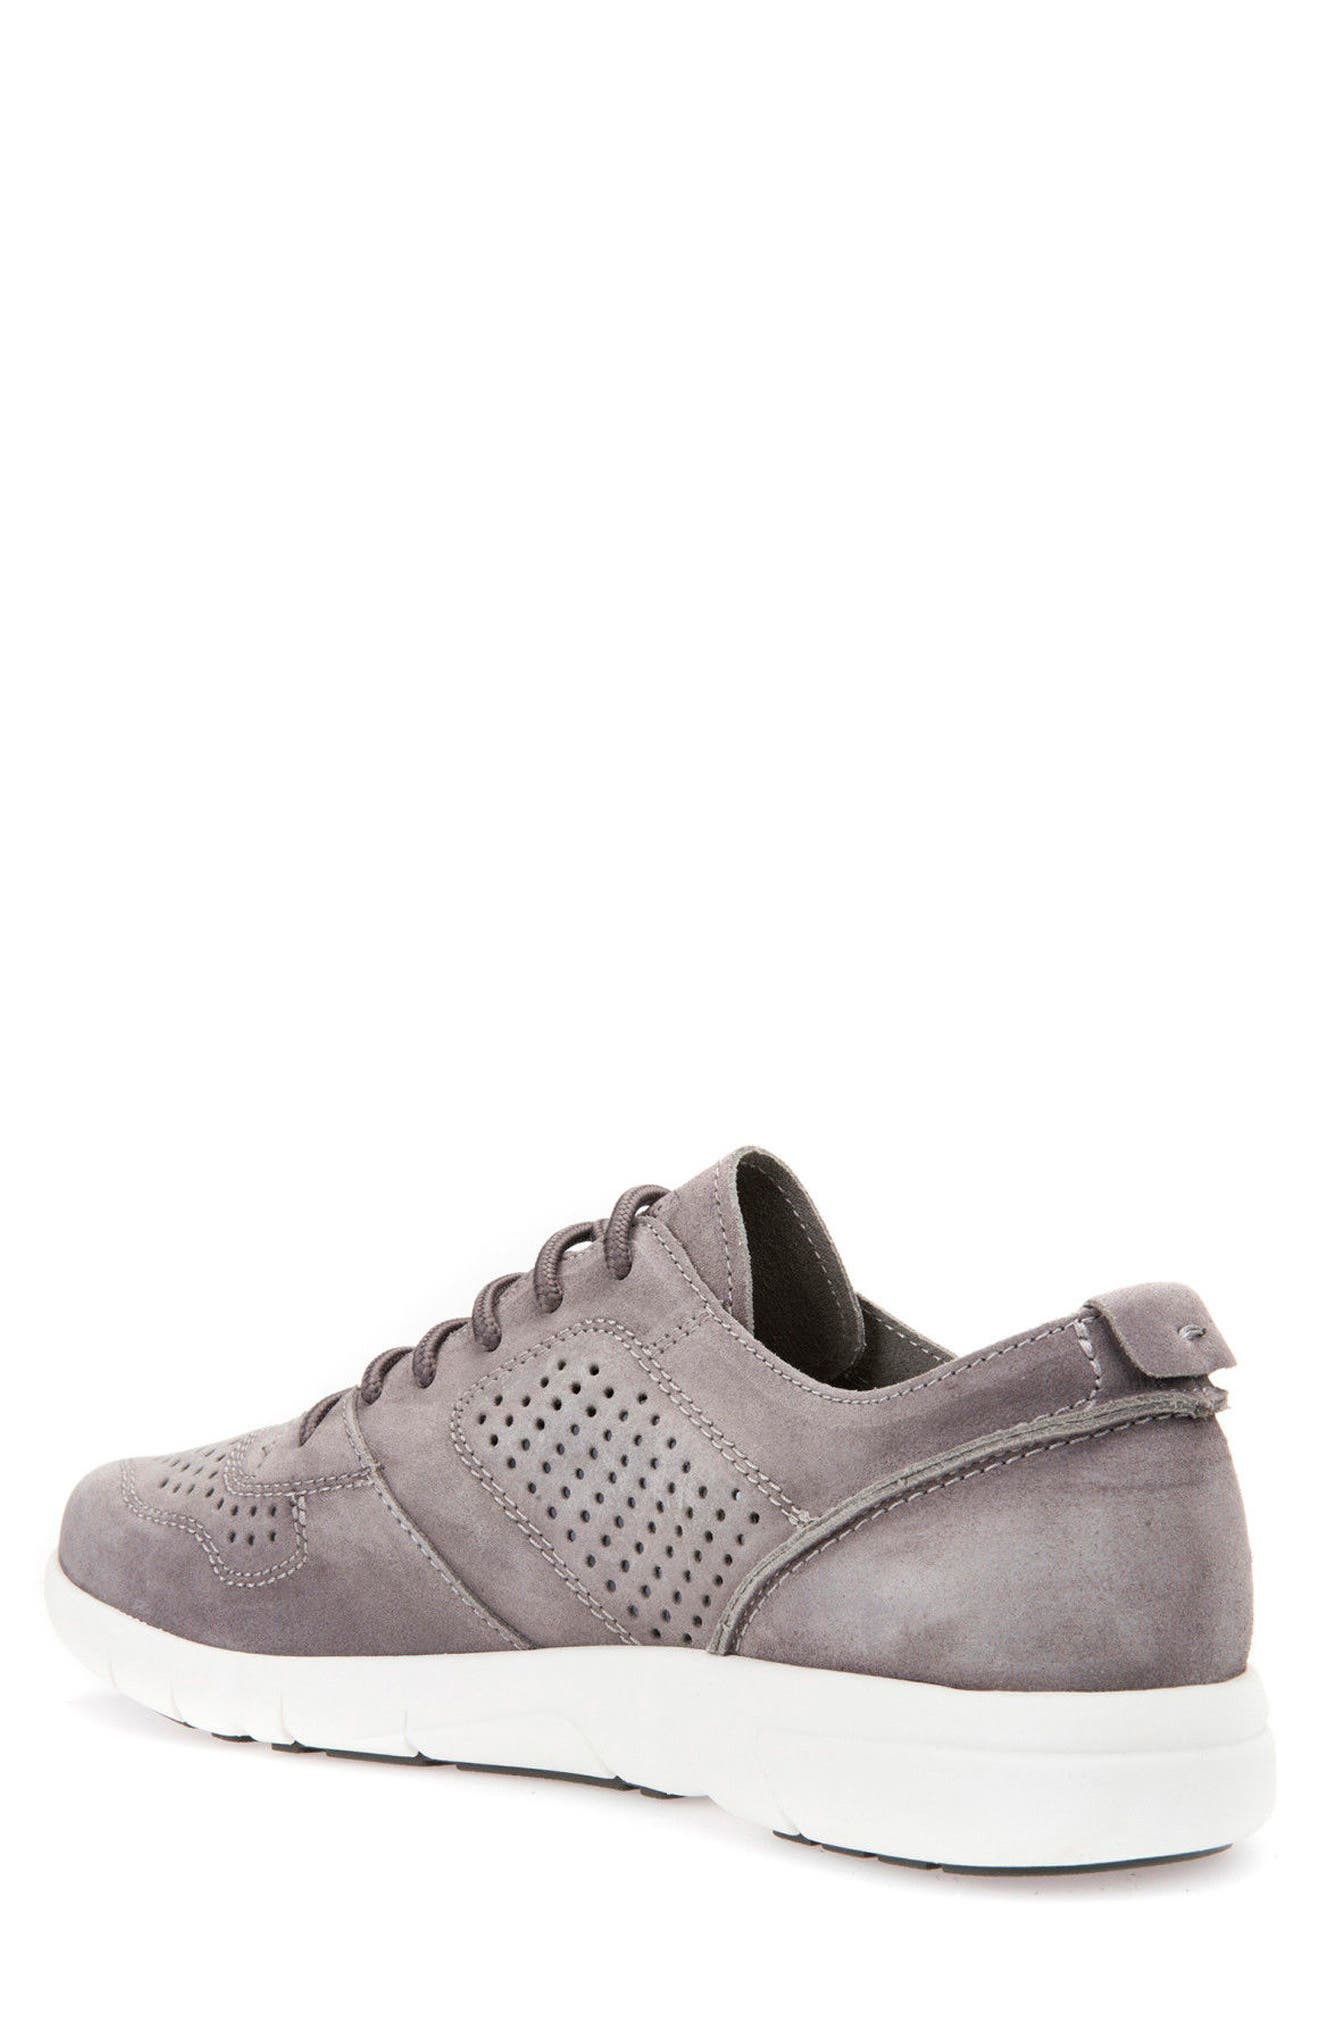 Brattley 2 Perforated Sneaker,                             Alternate thumbnail 2, color,                             020